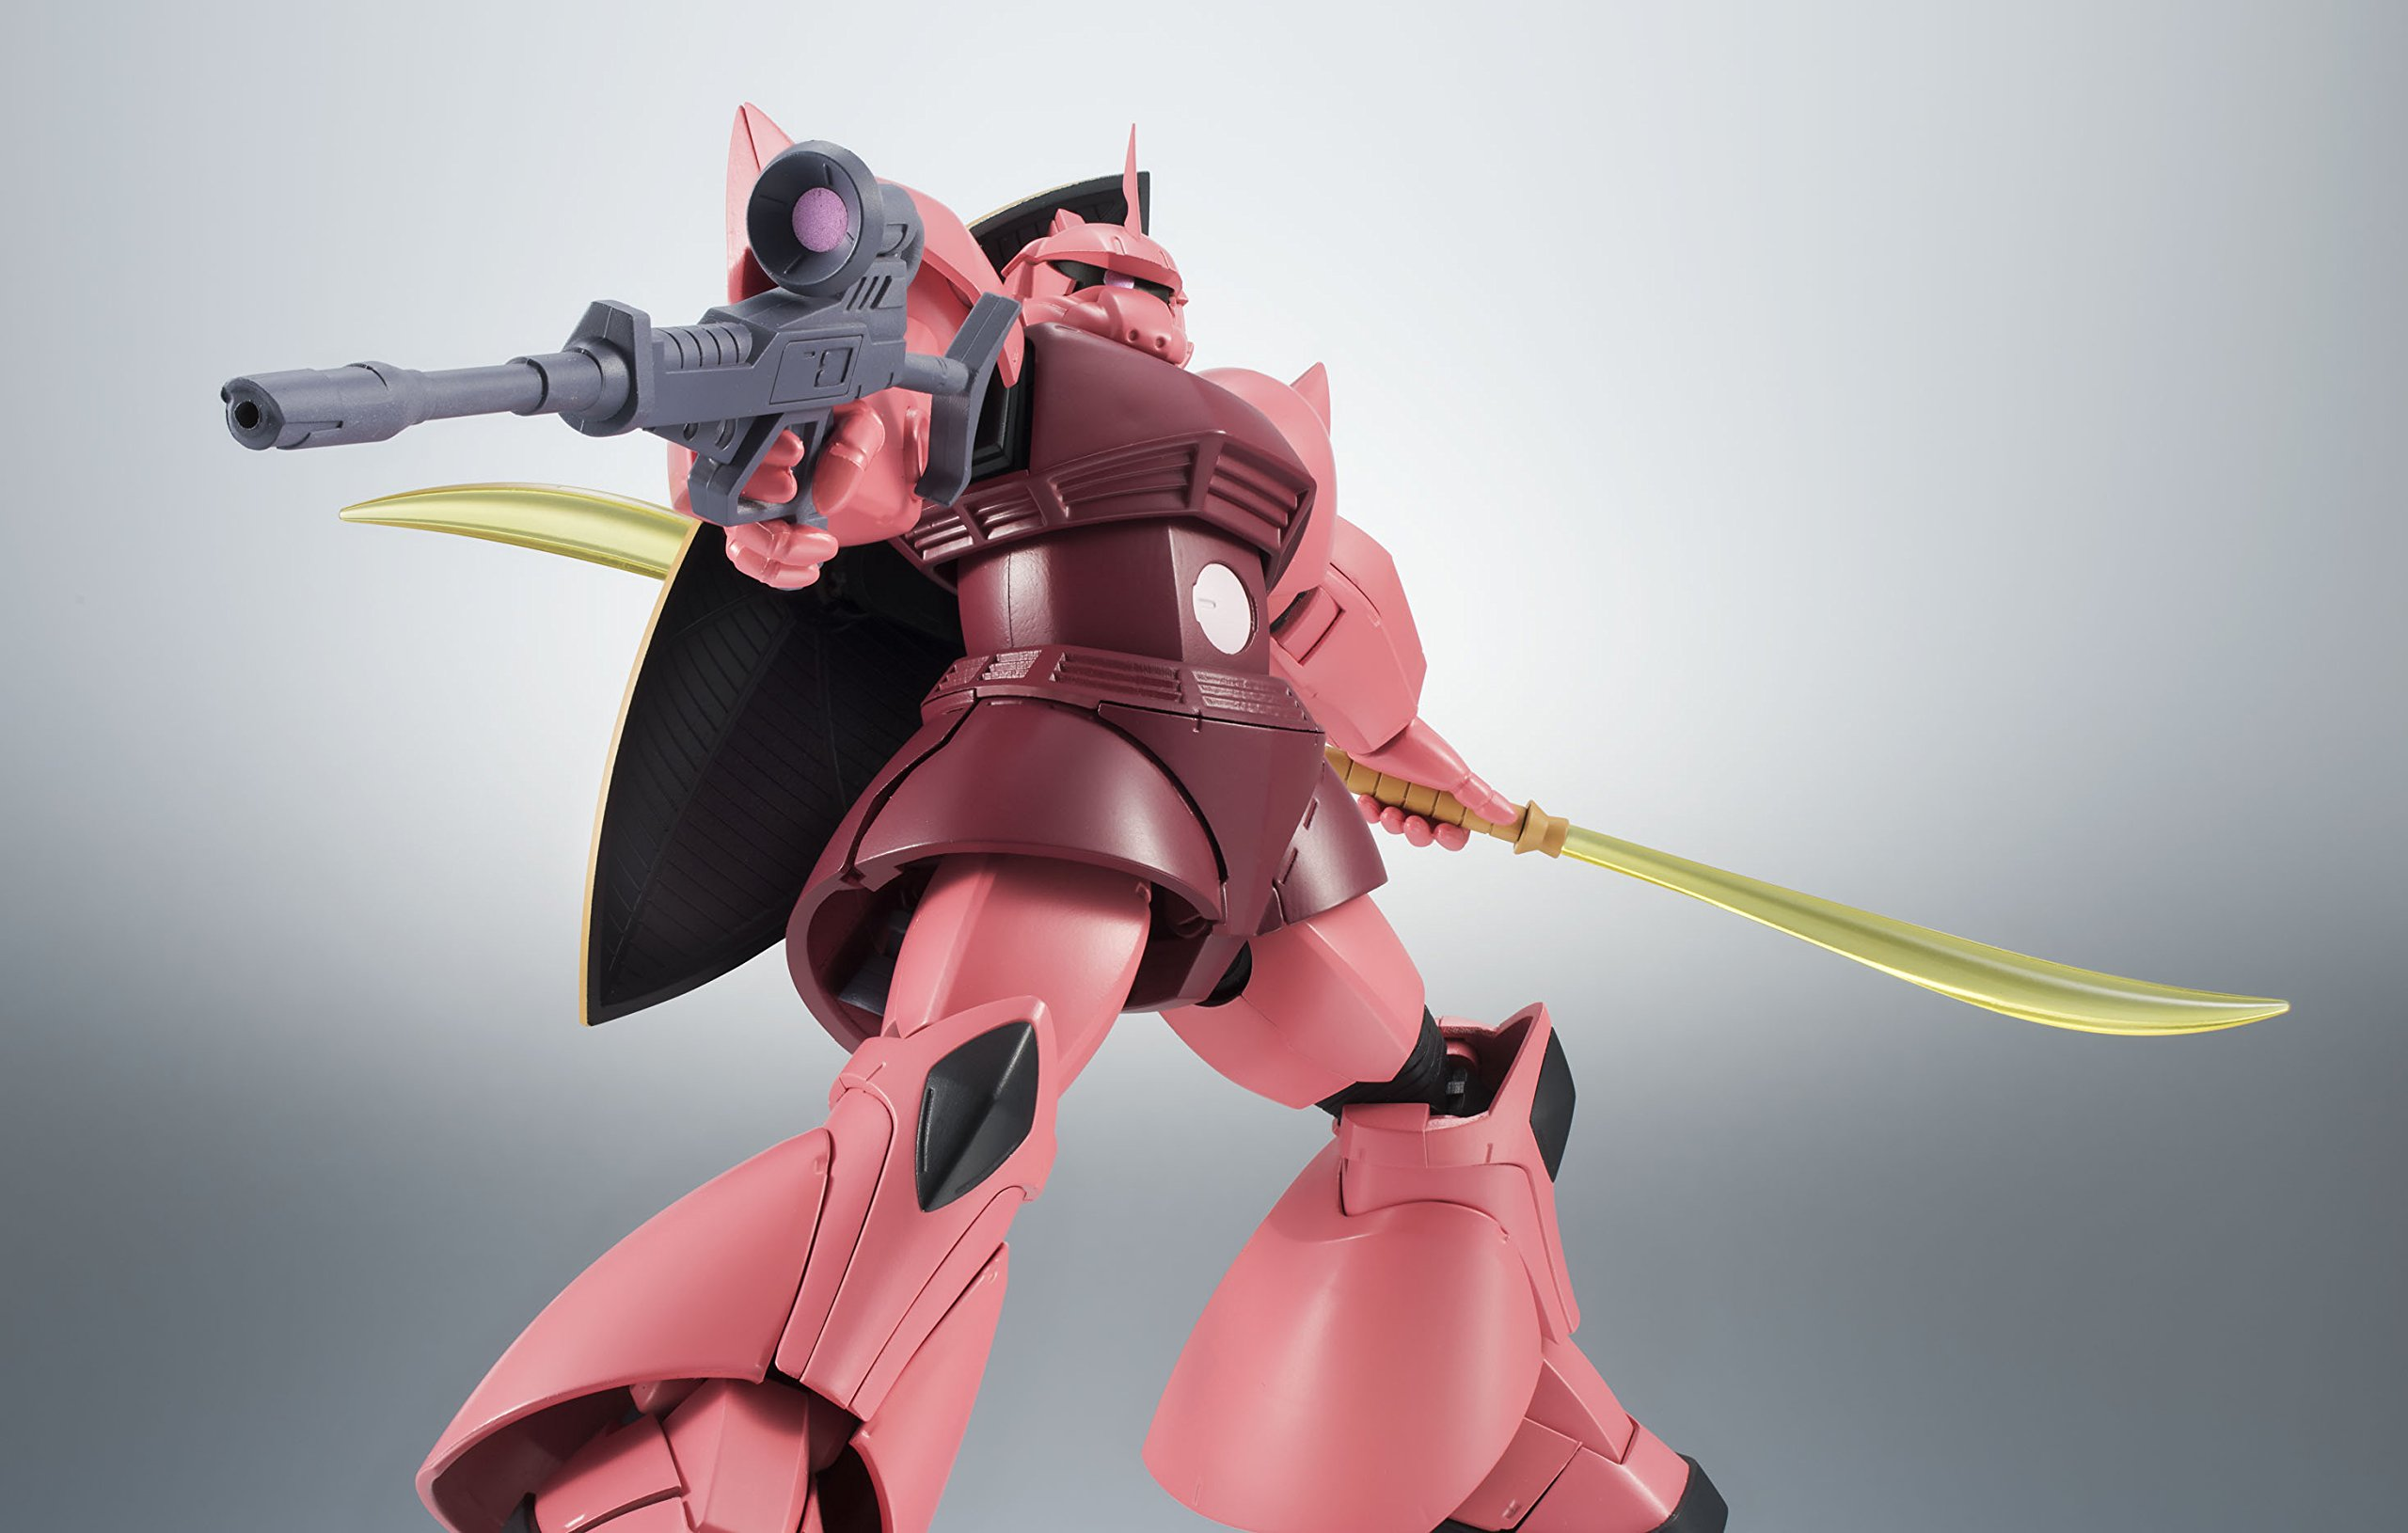 ROBOT魂 機動戦士ガンダム [SIDE MS] MS-14S シャア専用ゲルググ ver. A.N.I.M.E. 約130mm ABS&PVC製 塗装済み可動フィギュア